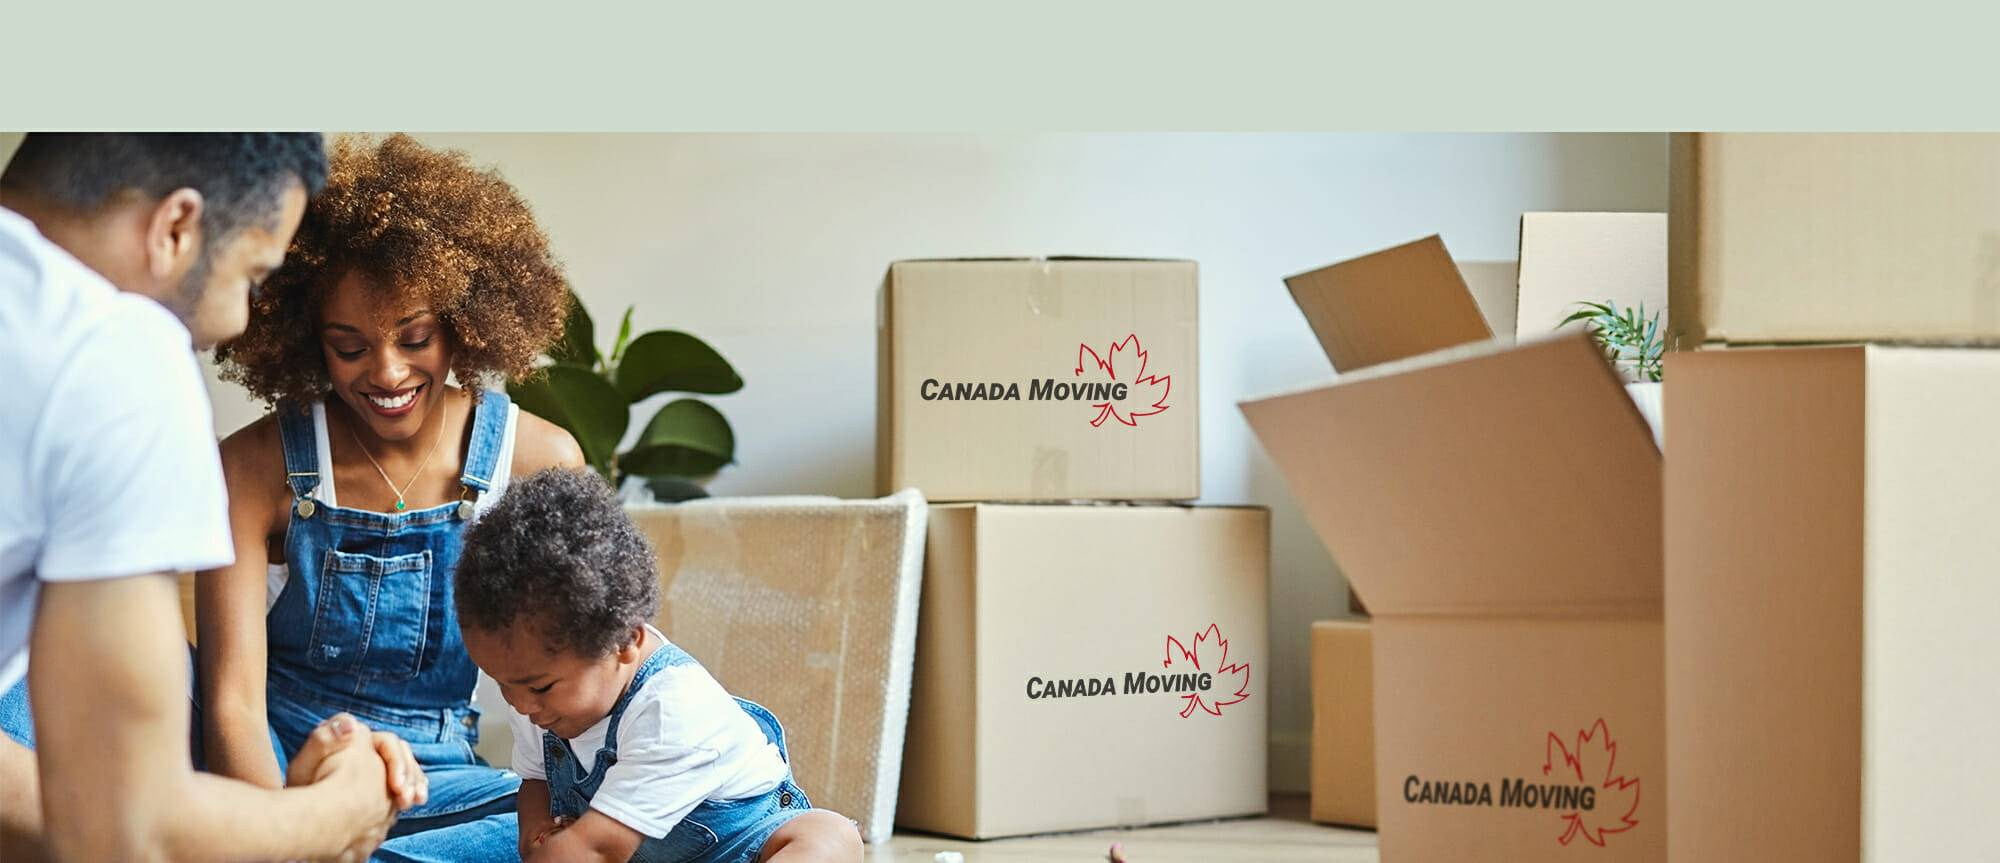 Long-Distance-Moving-Company-Canada-Moving